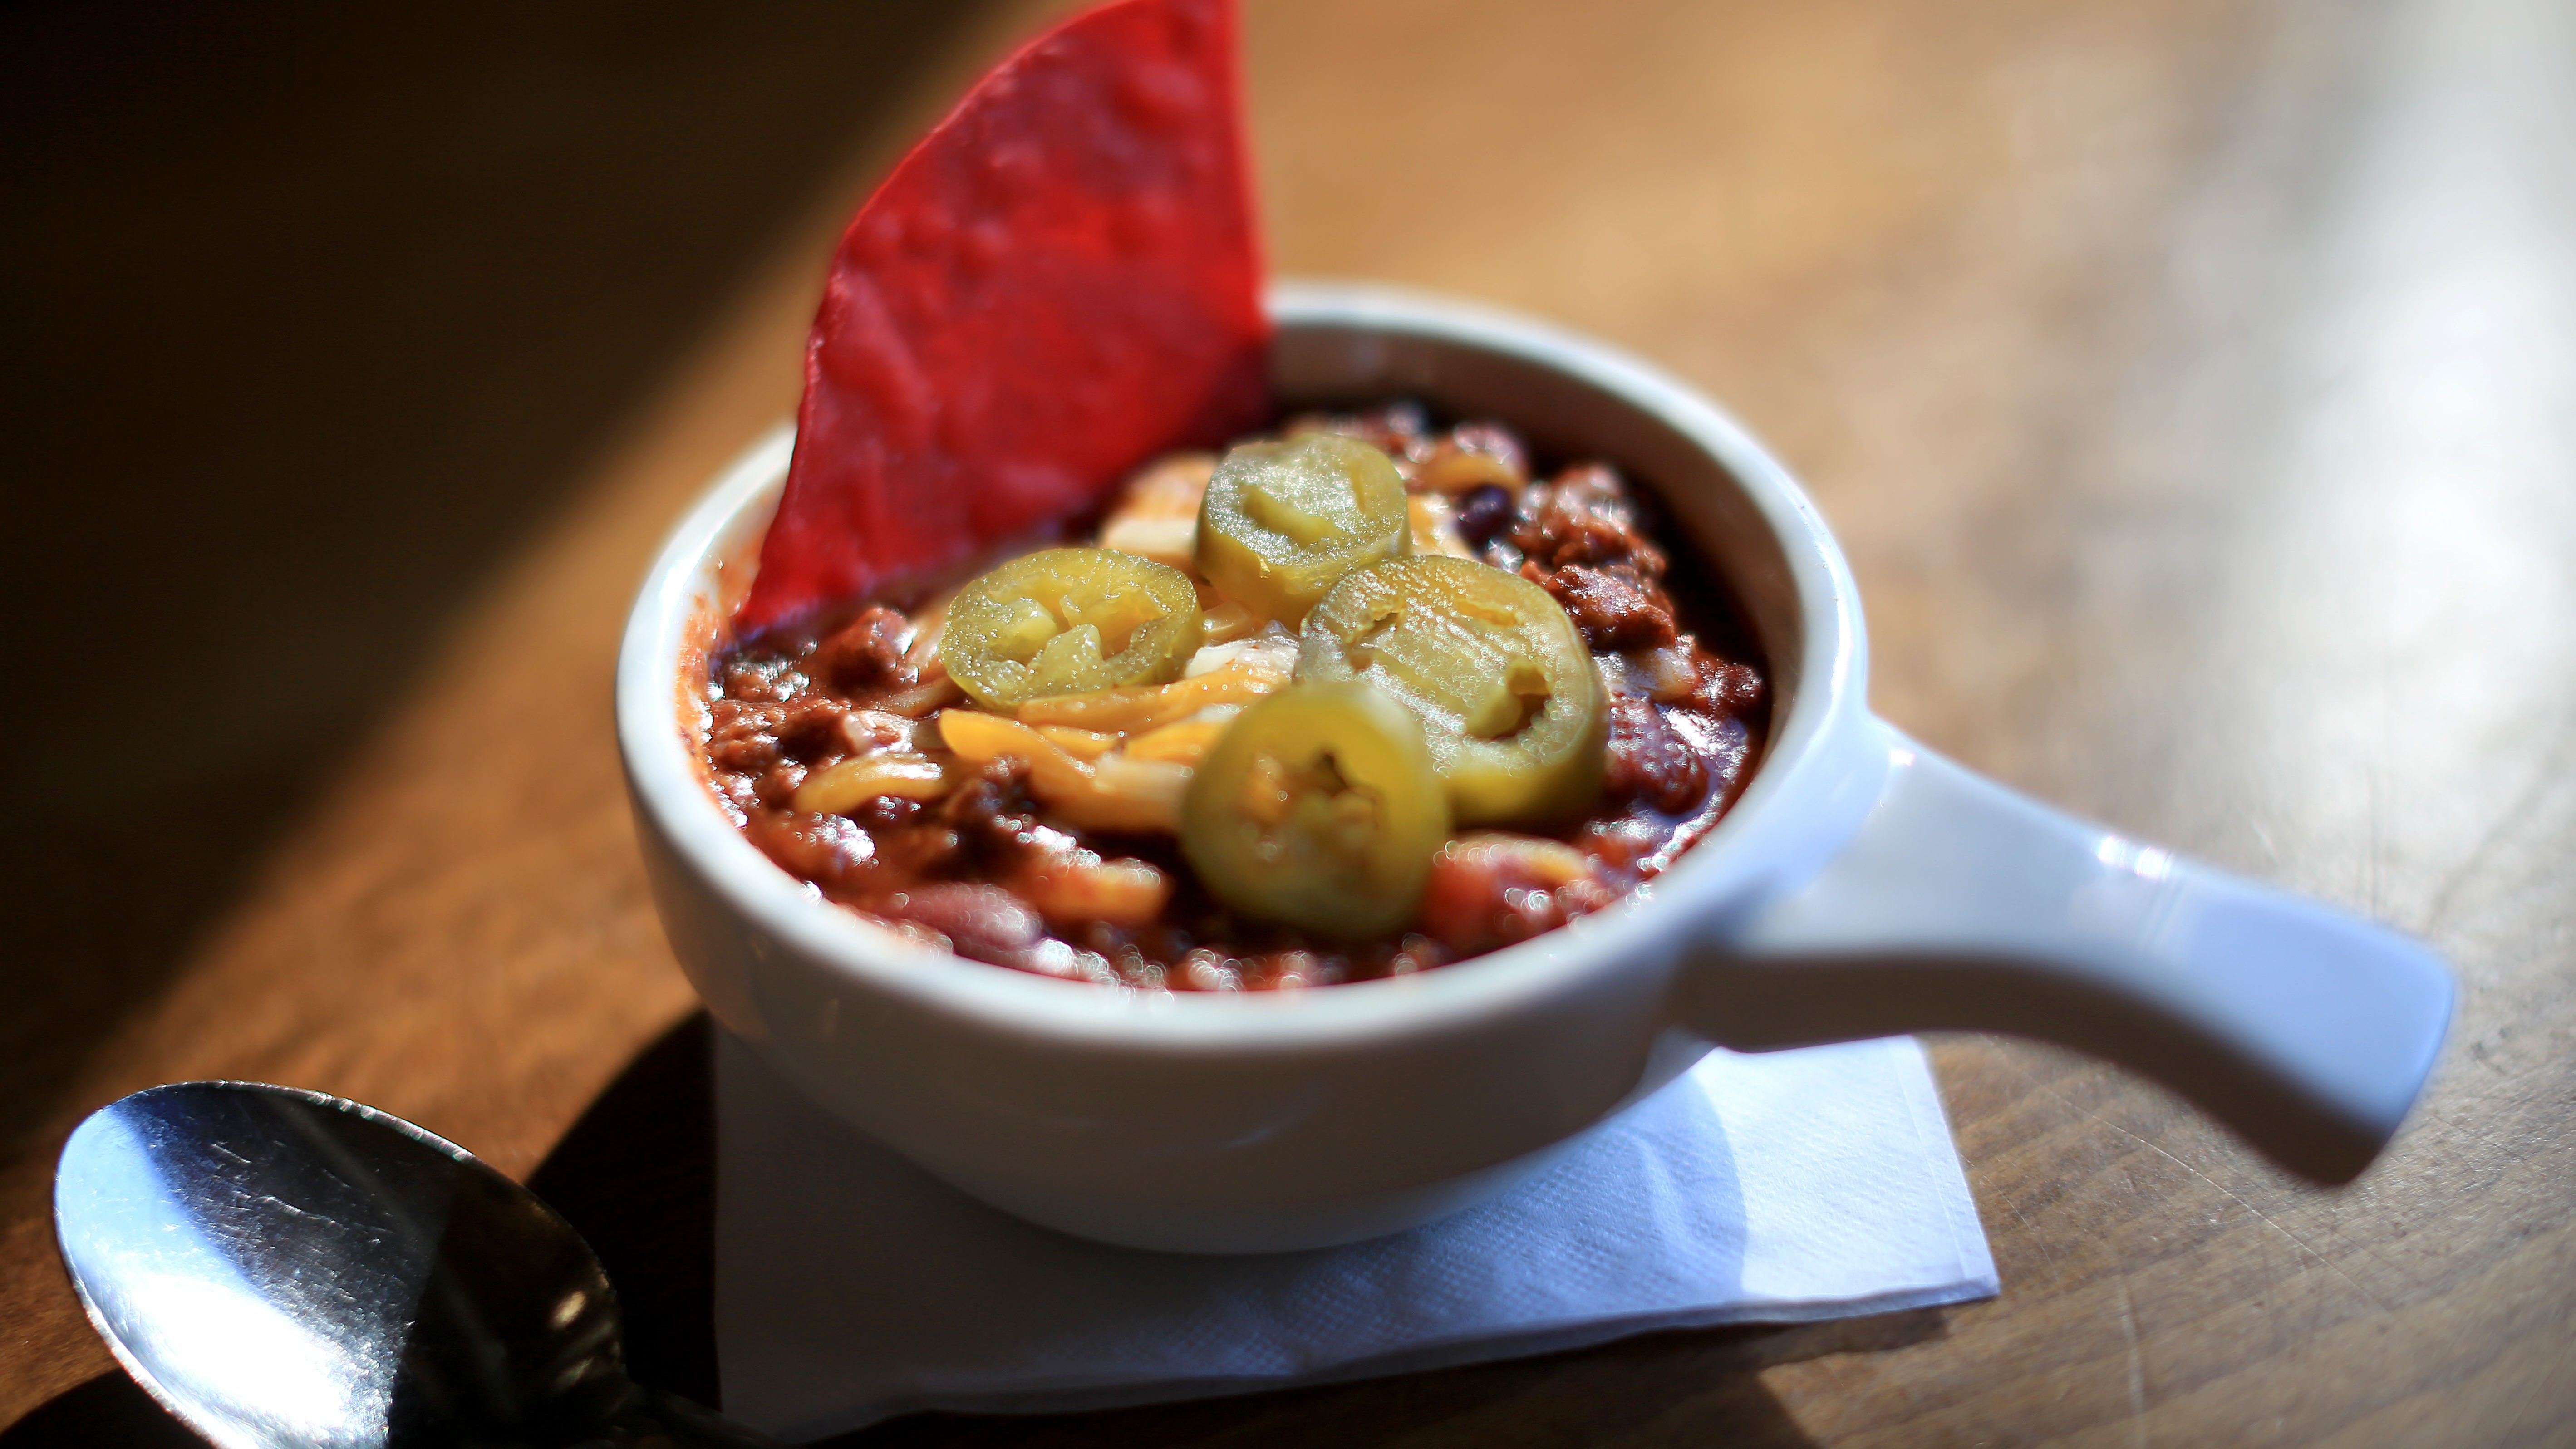 Cold Make Some Chili With These Recipes